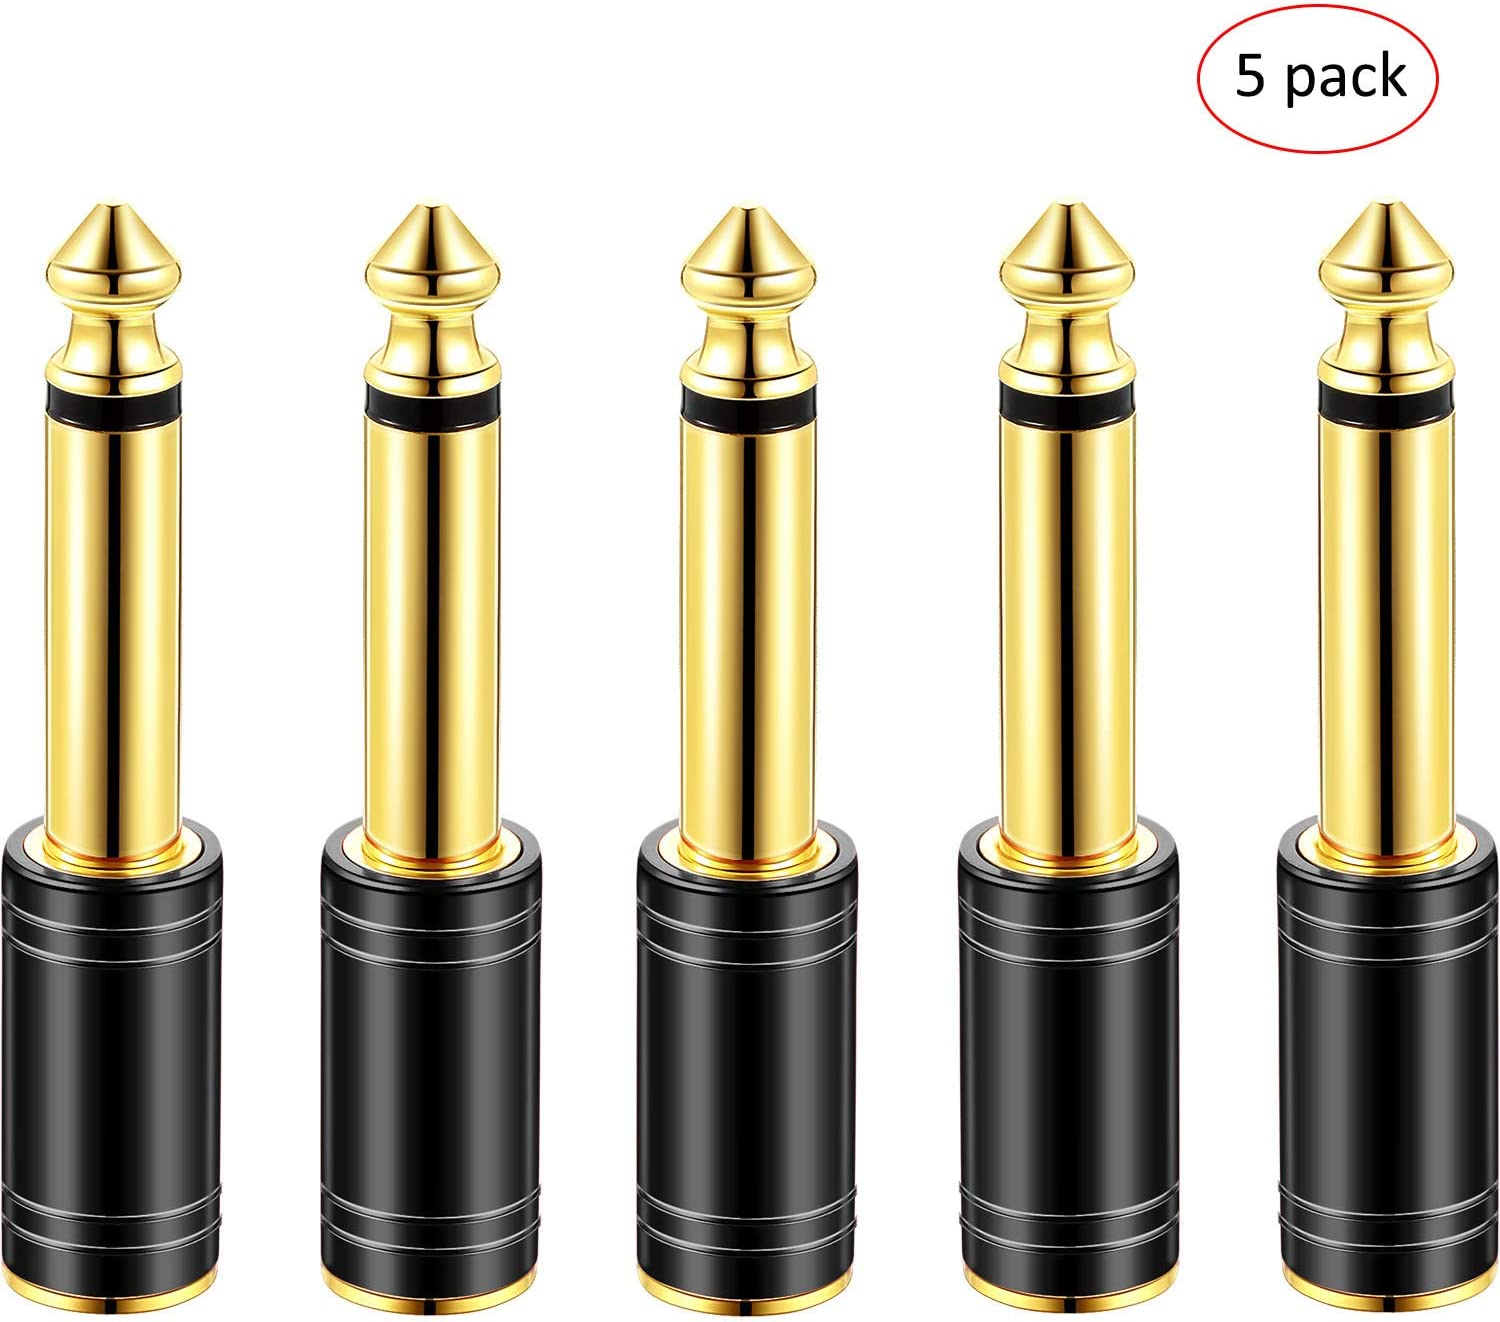 Amp Adapter 1//4 Inch Male to 1//8 Inch Female Stereo Pure Copper Headphone Adapter Upgrade 6.35 mm Jack Stereo Socket Male to 3.5 mm Jack Stereo Plug Female for Headphone Black 5 Pack